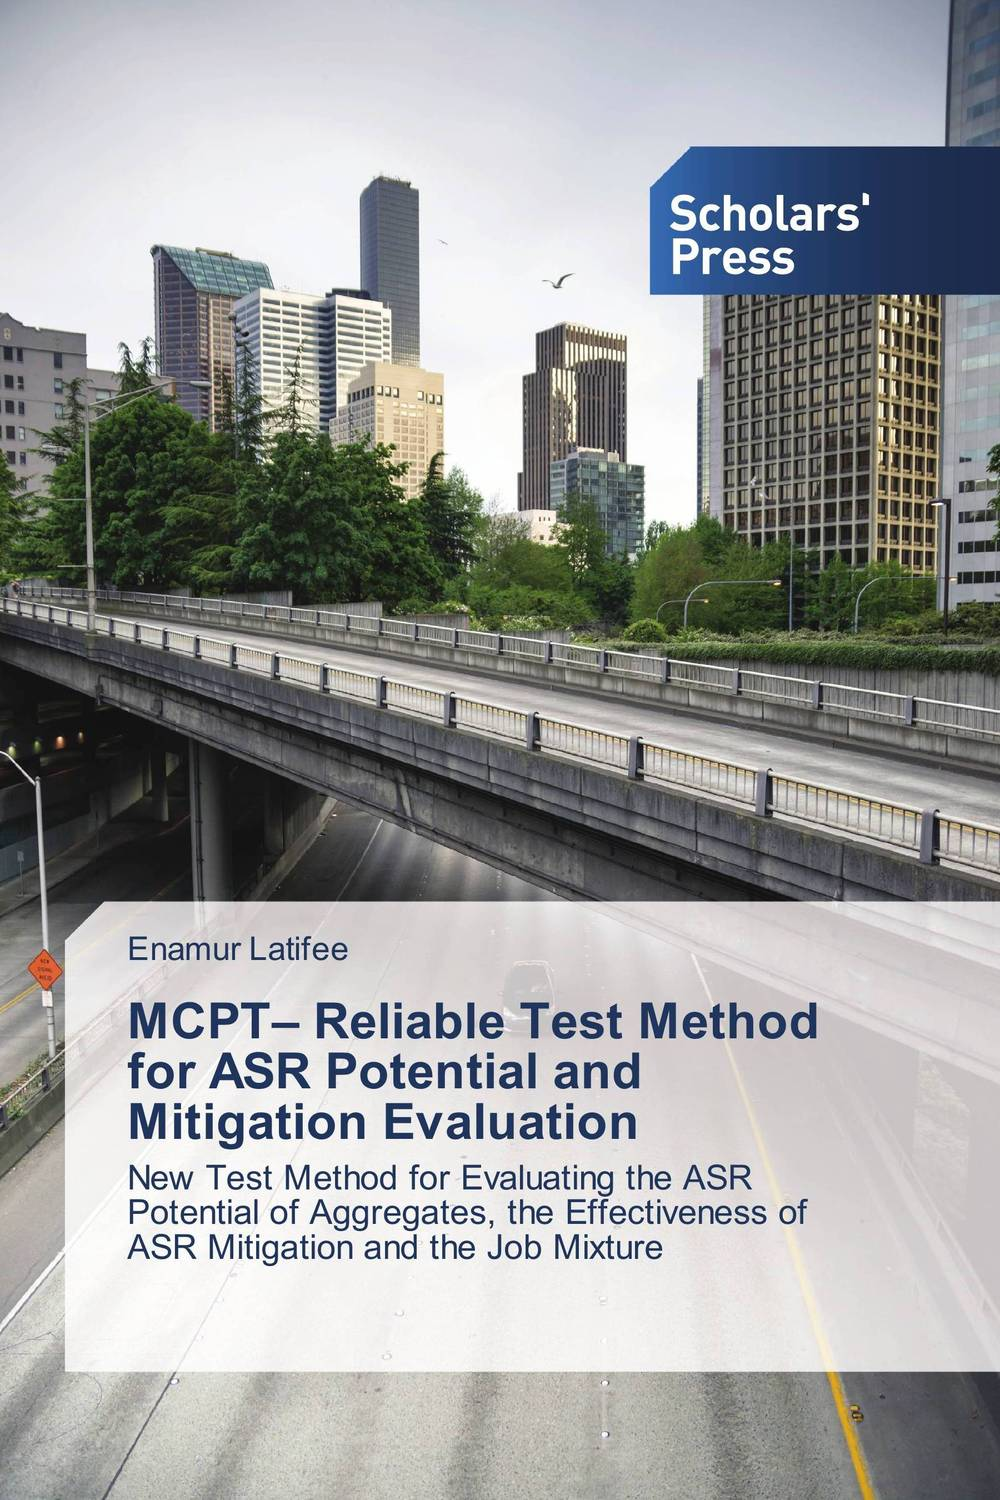 MCPT– Reliable Test Method for ASR Potential and Mitigation Evaluation the mirror test